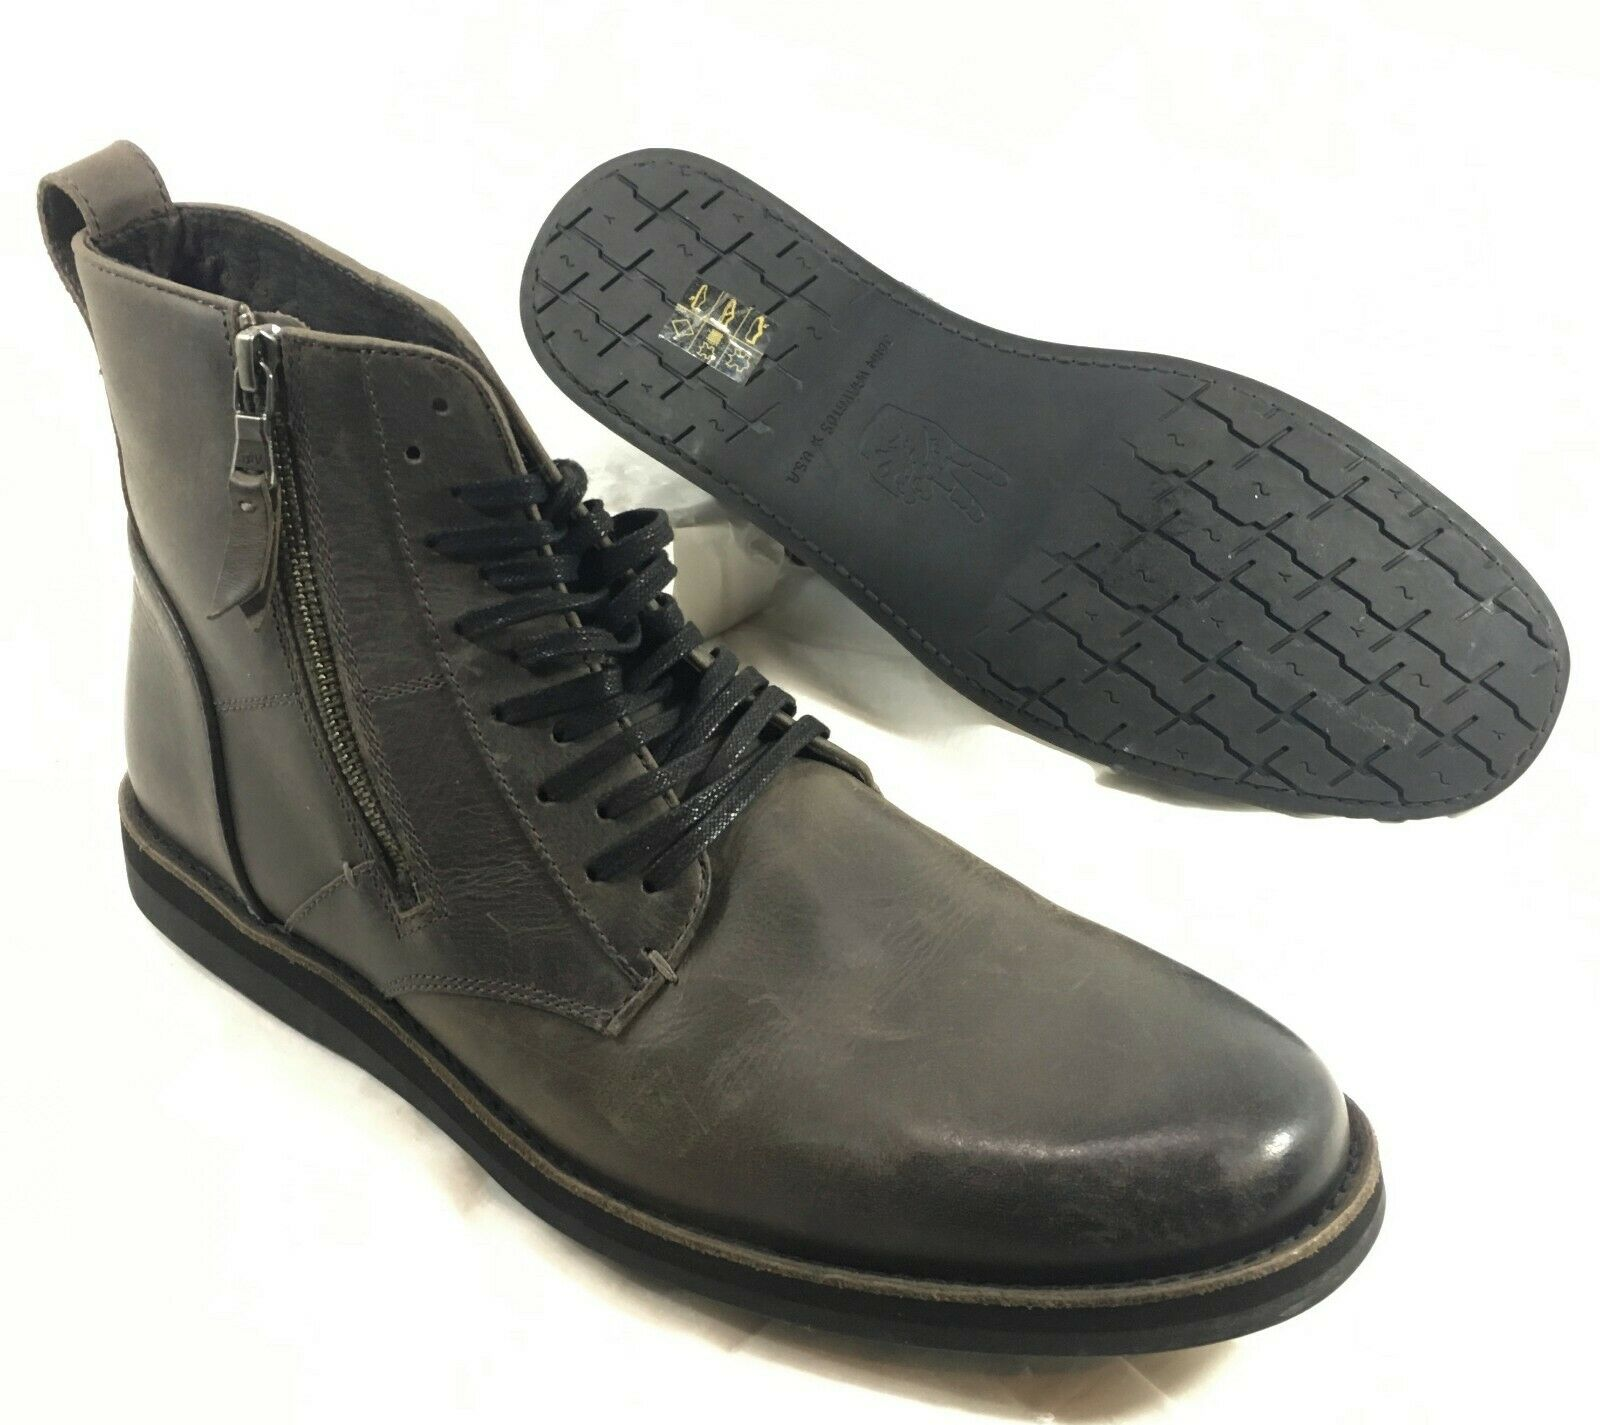 NEW John Varvatos Brown leather Tire Tread Ankle Boots Lace up & Zip Sz 10.5